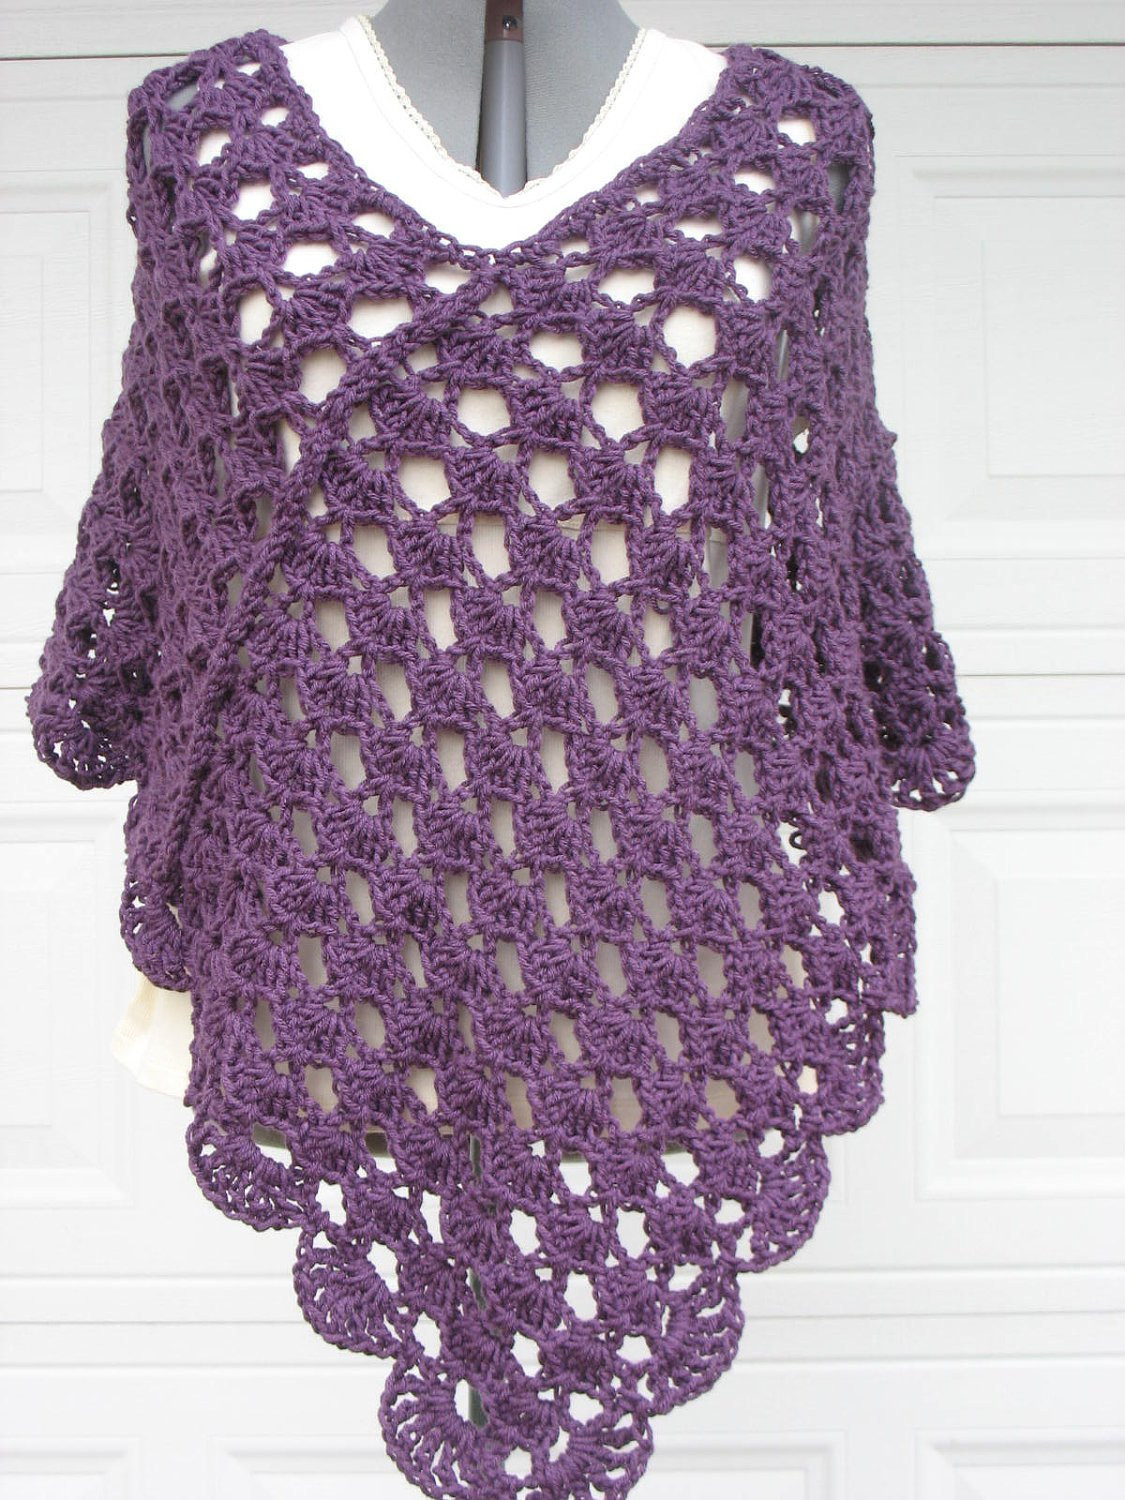 Plus Size La s Crochet Poncho Shell Stitch in Plum